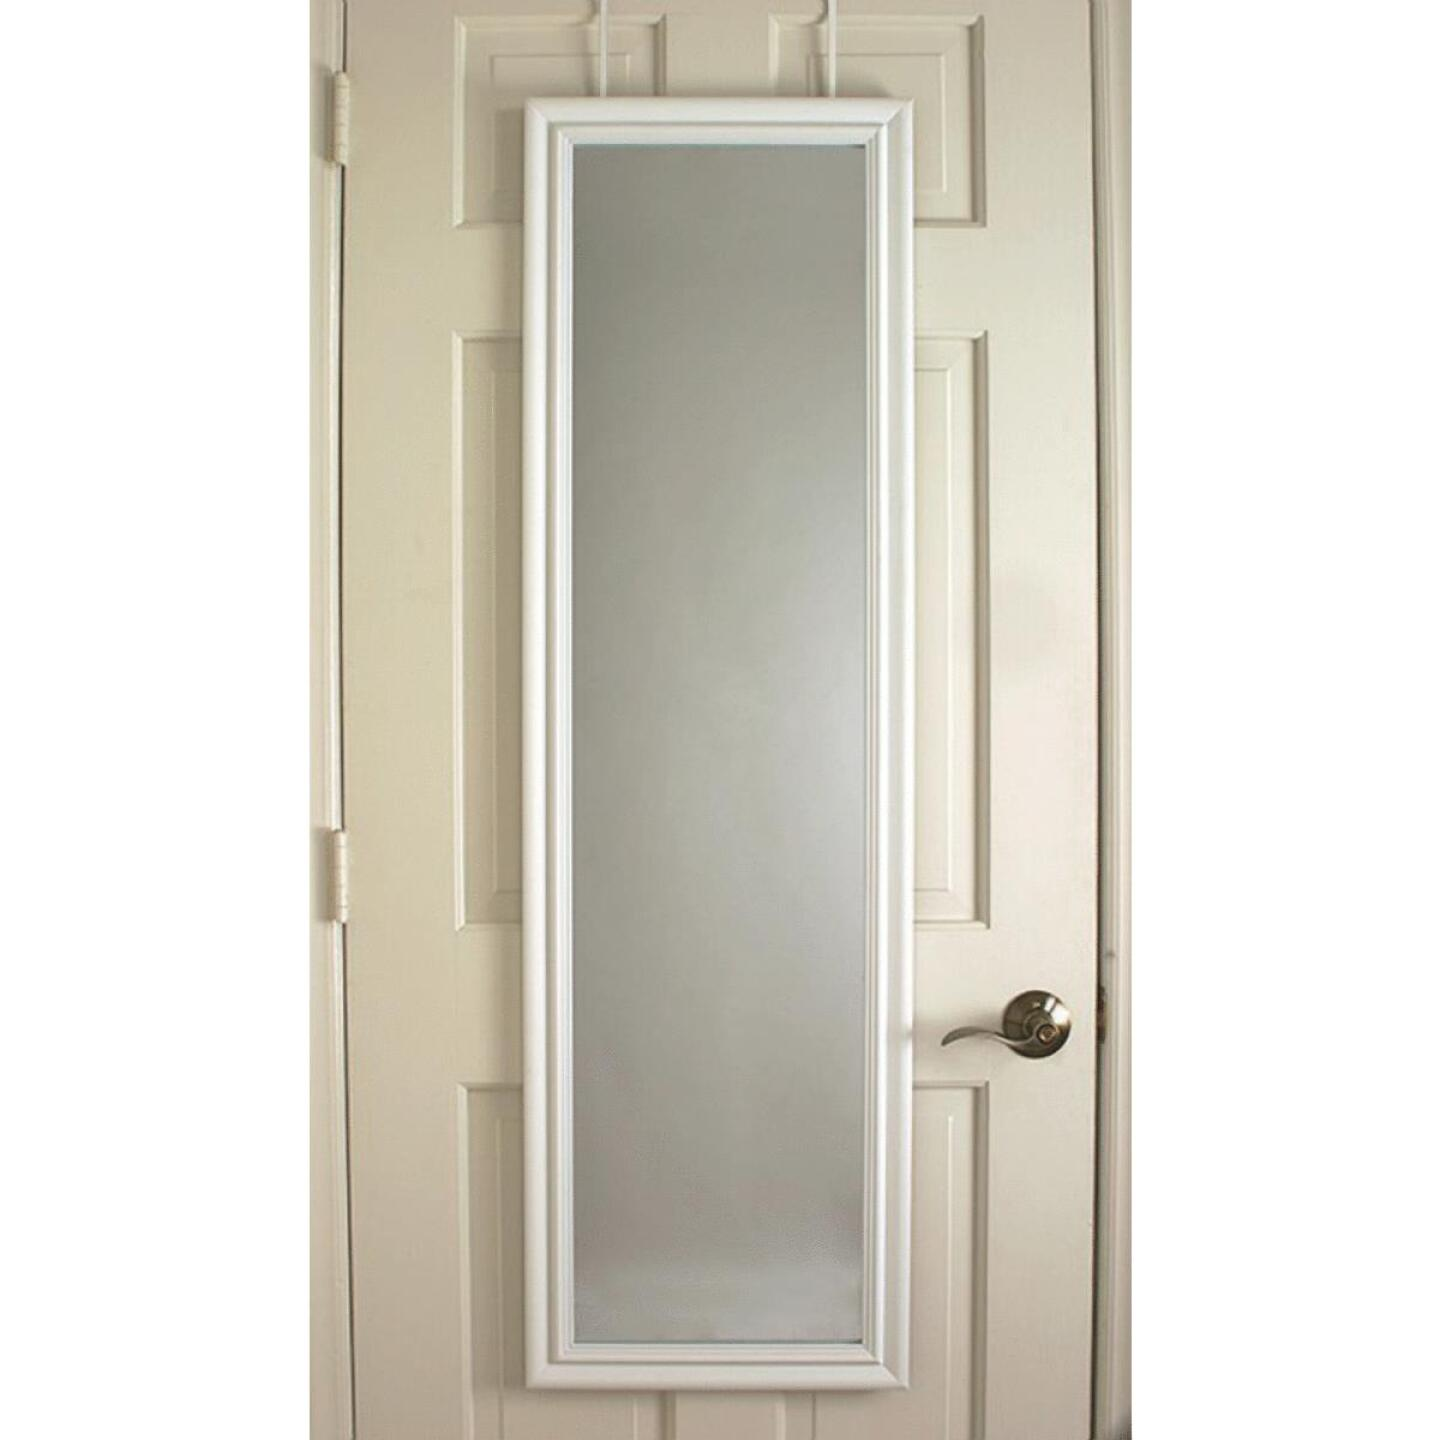 Renin Mackenzie 15 In. x 51 In. Over-the-Top Door Mirror Image 1